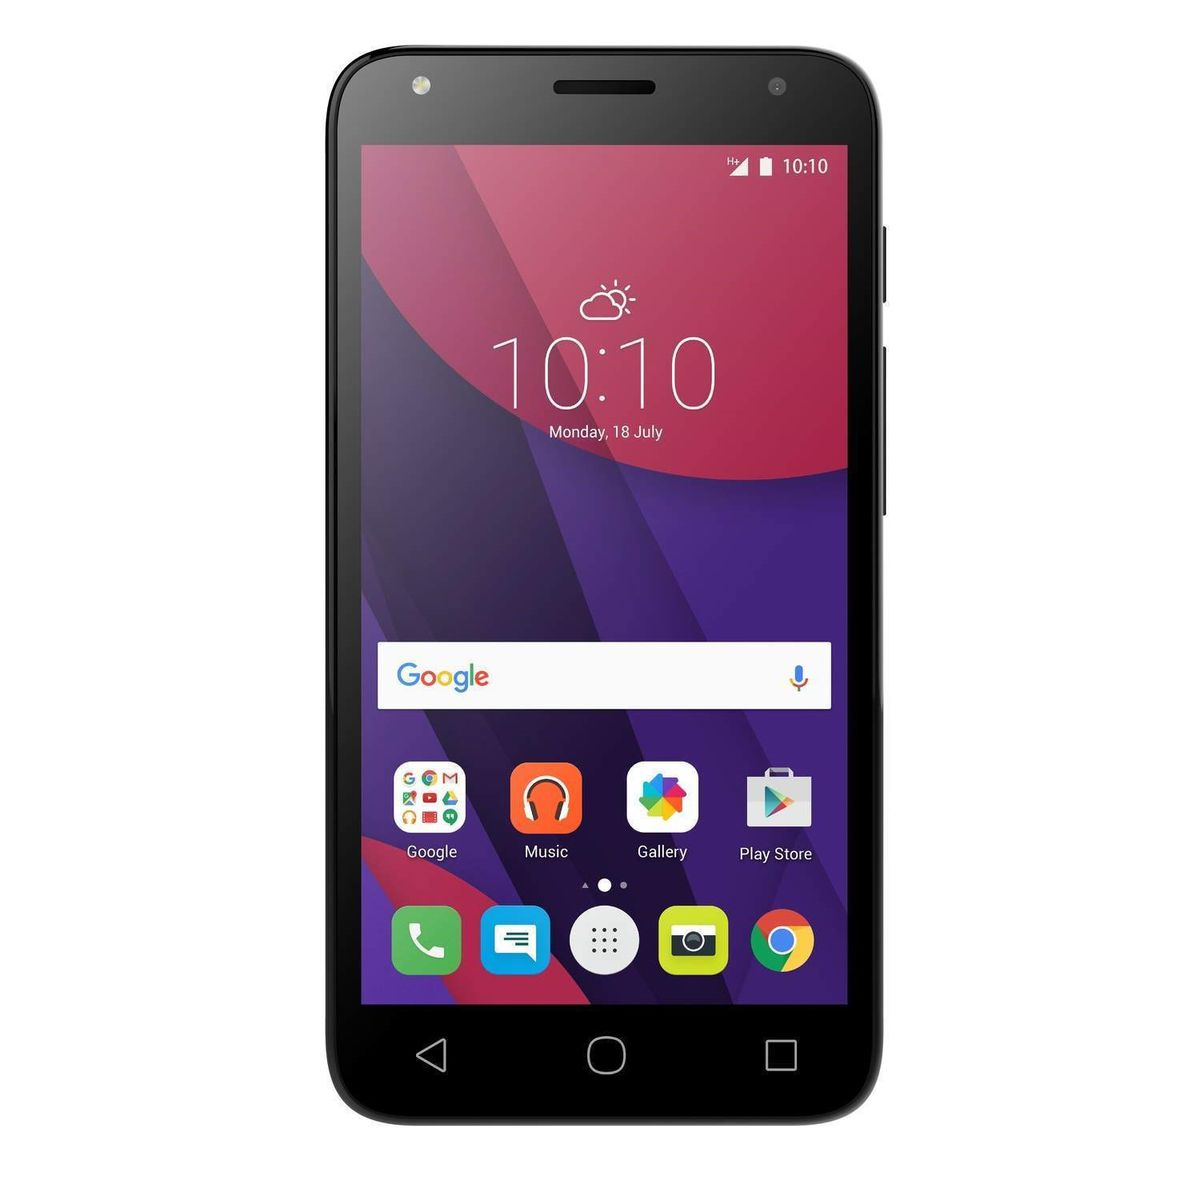 Top 5 Smartphones You Can Buy In South Africa For Under R1 000 In 2017